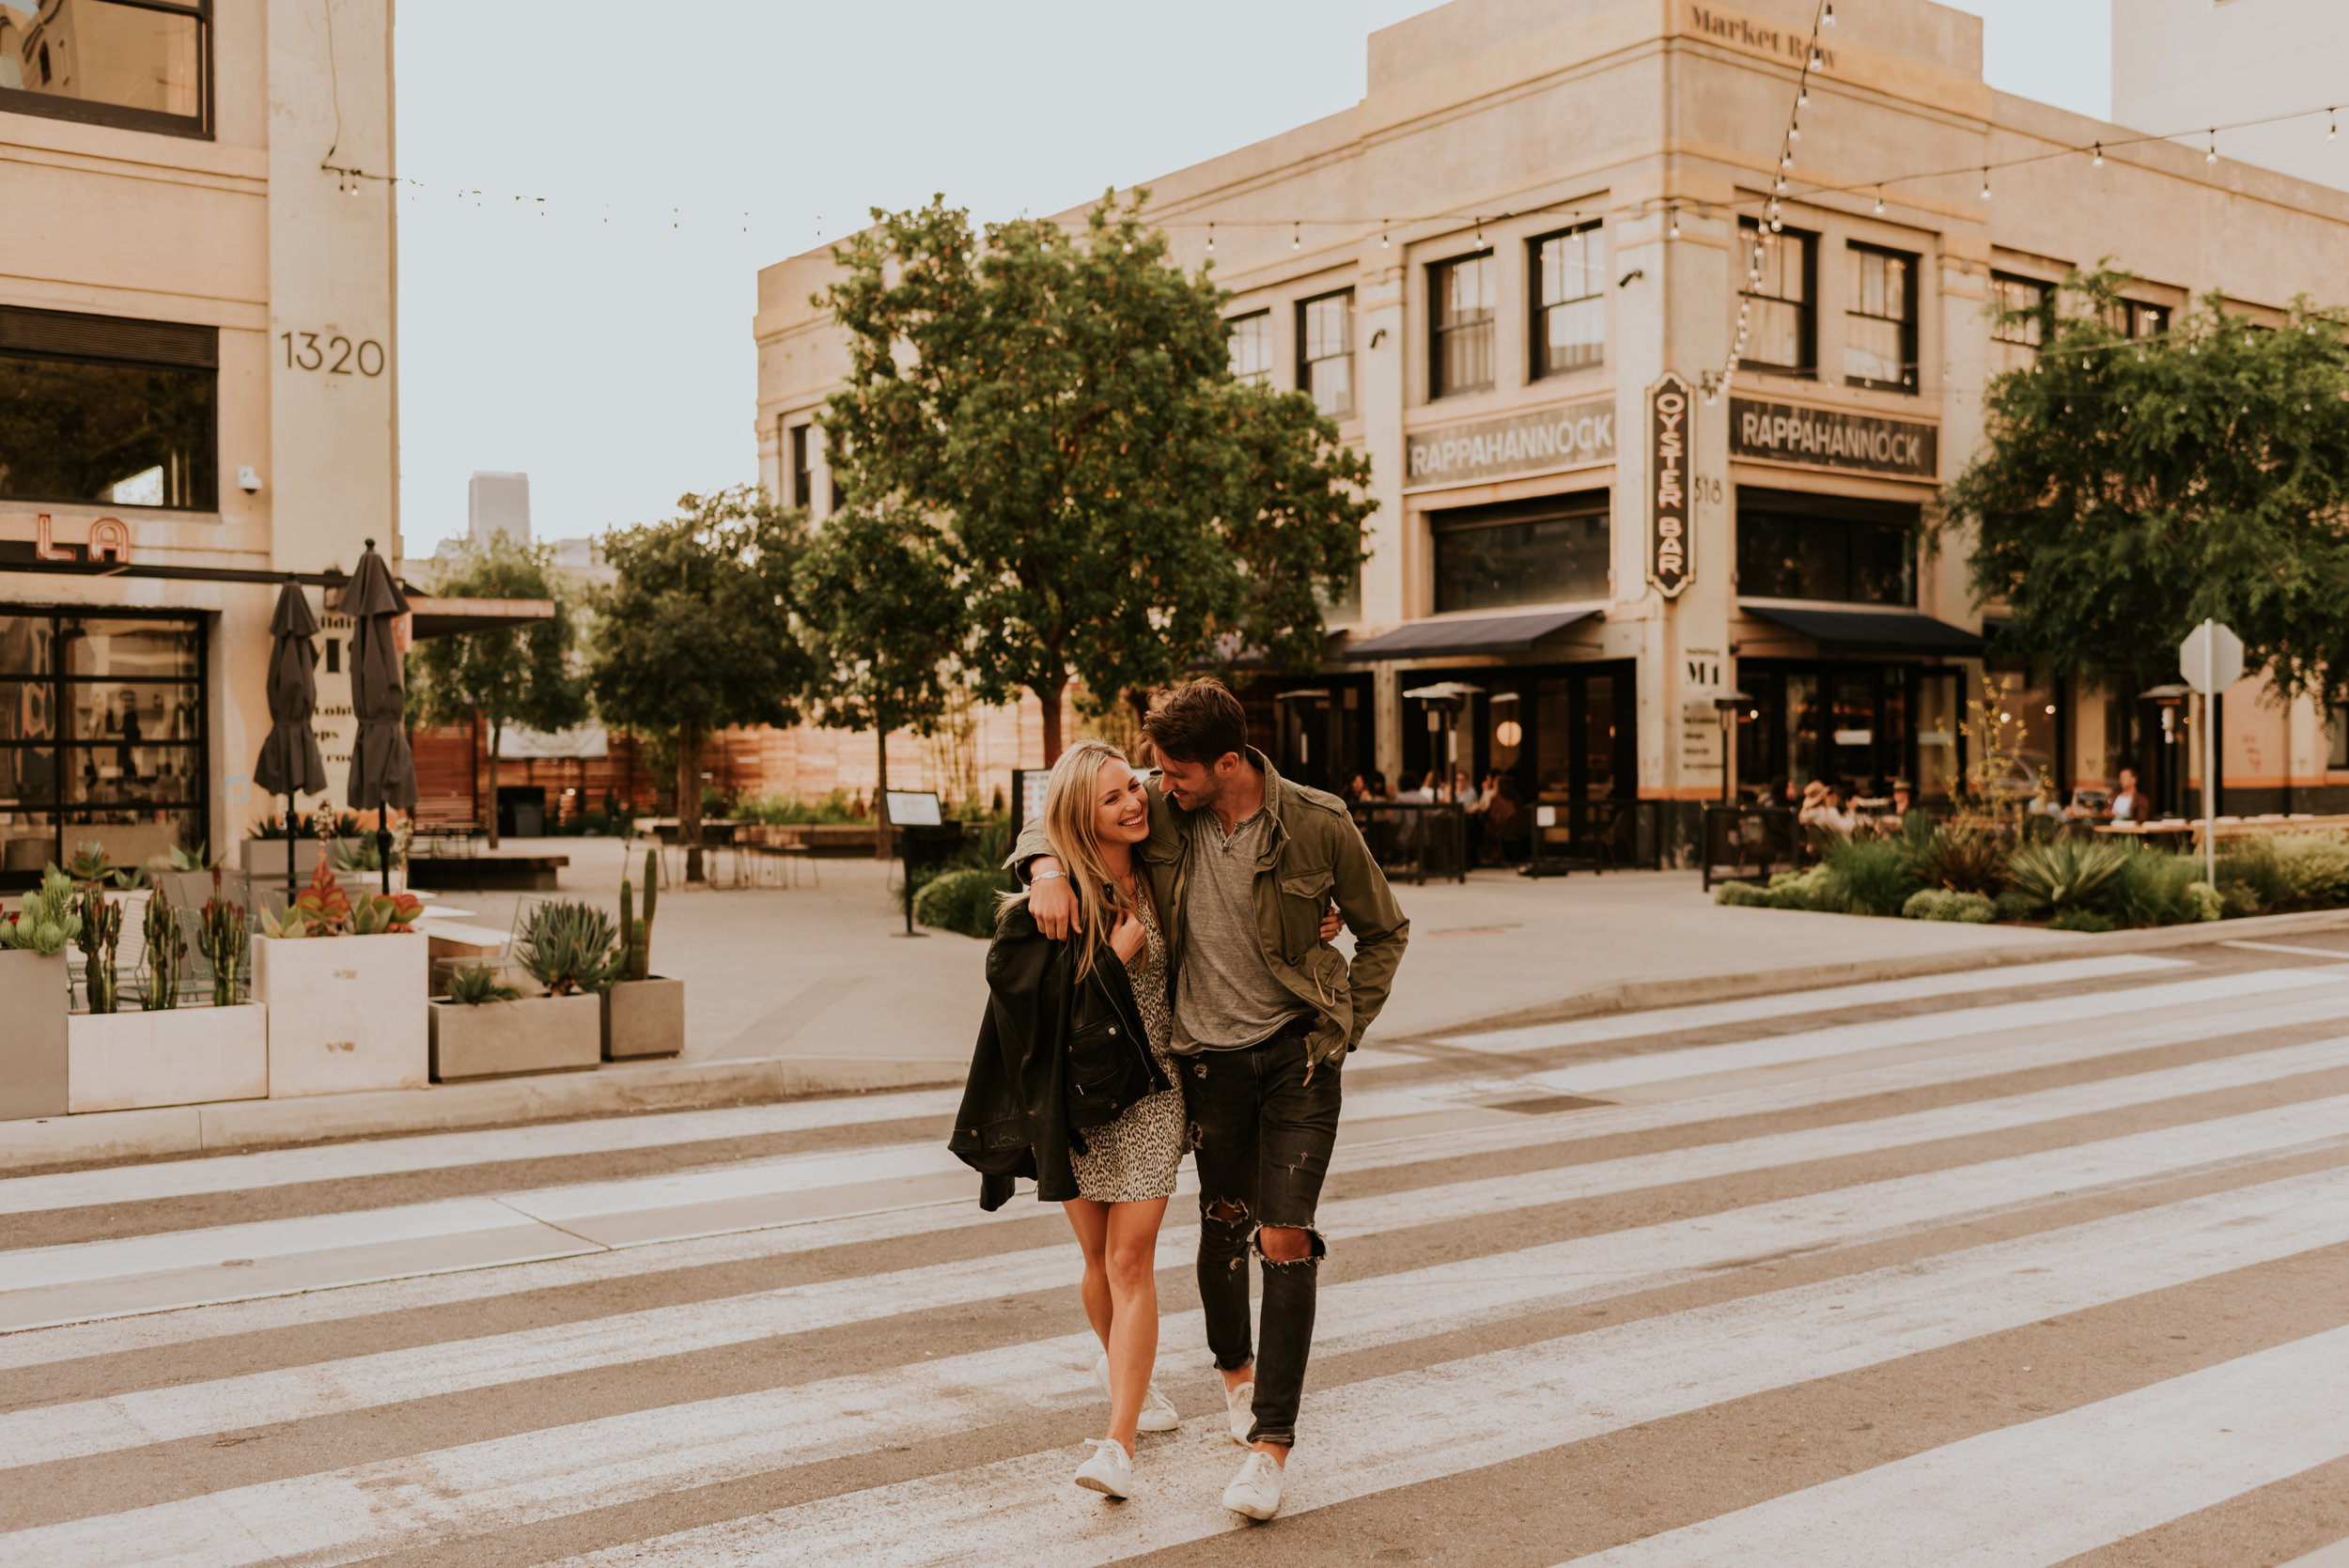 Downtown Los Angeles Rooftop Engagement Session | Carrie Rogers Photography | LA skyline view from rooftop | Urban engagement session | #couples #engagement